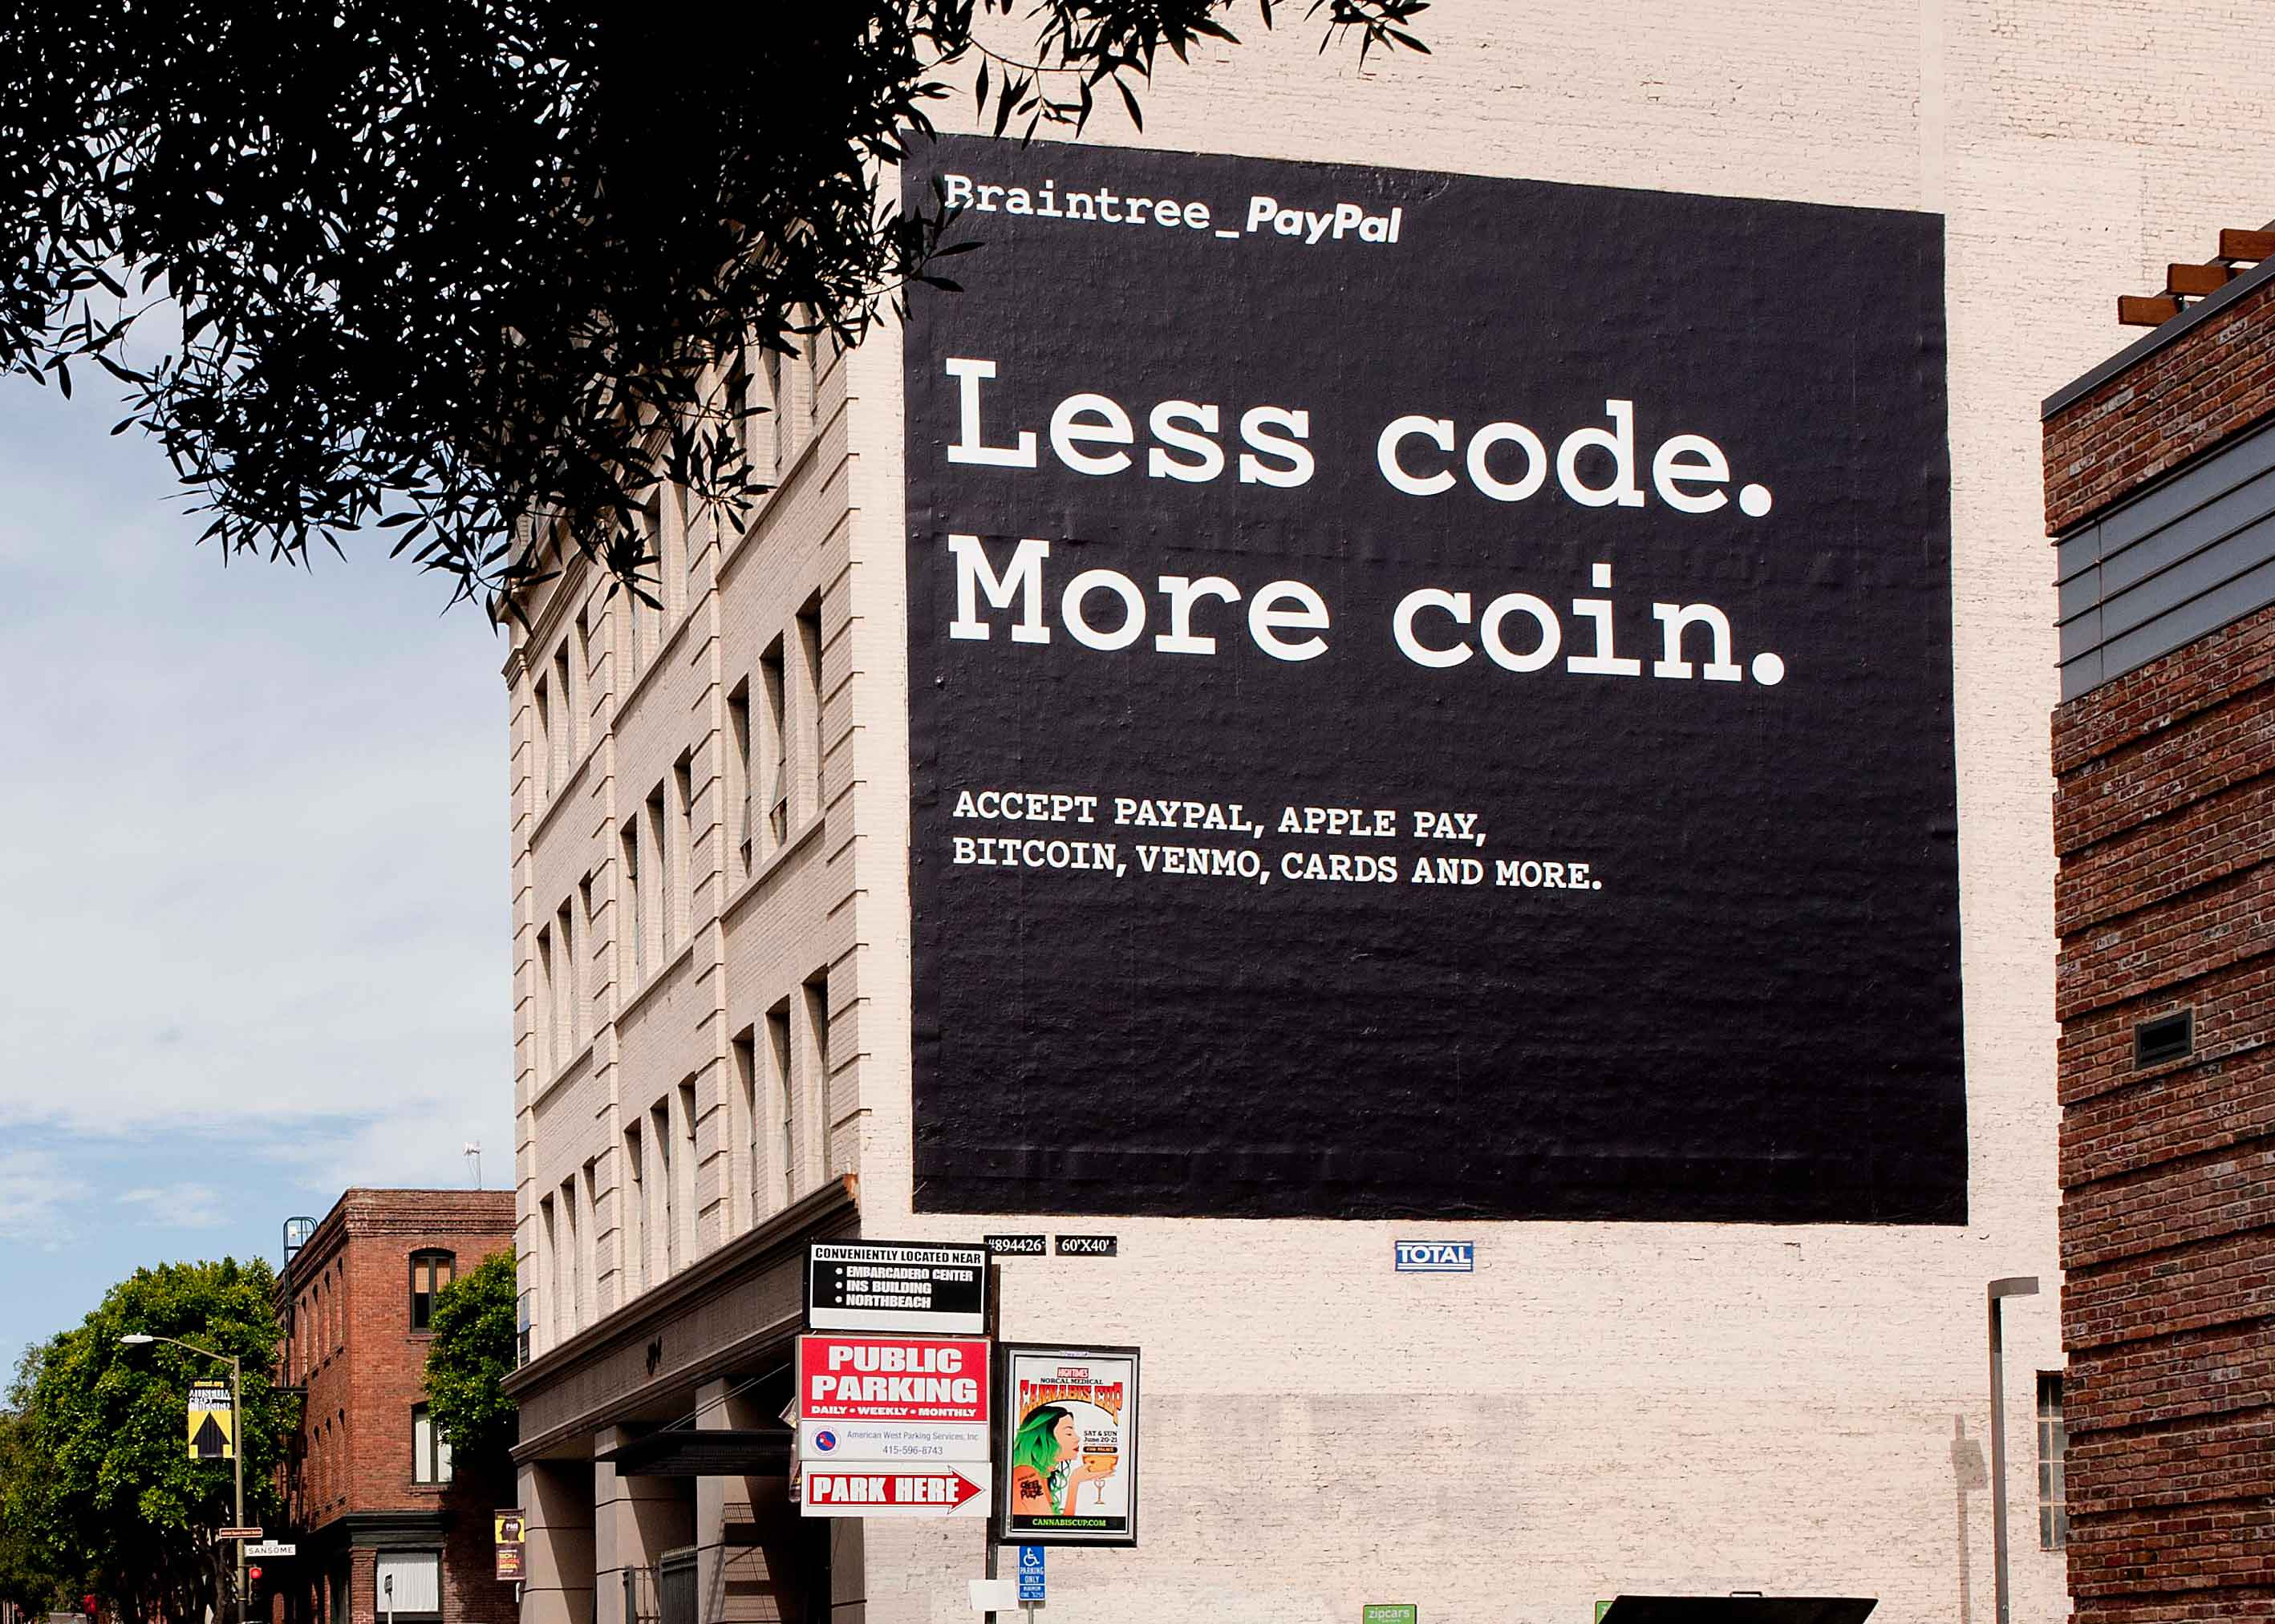 less code. more coin.